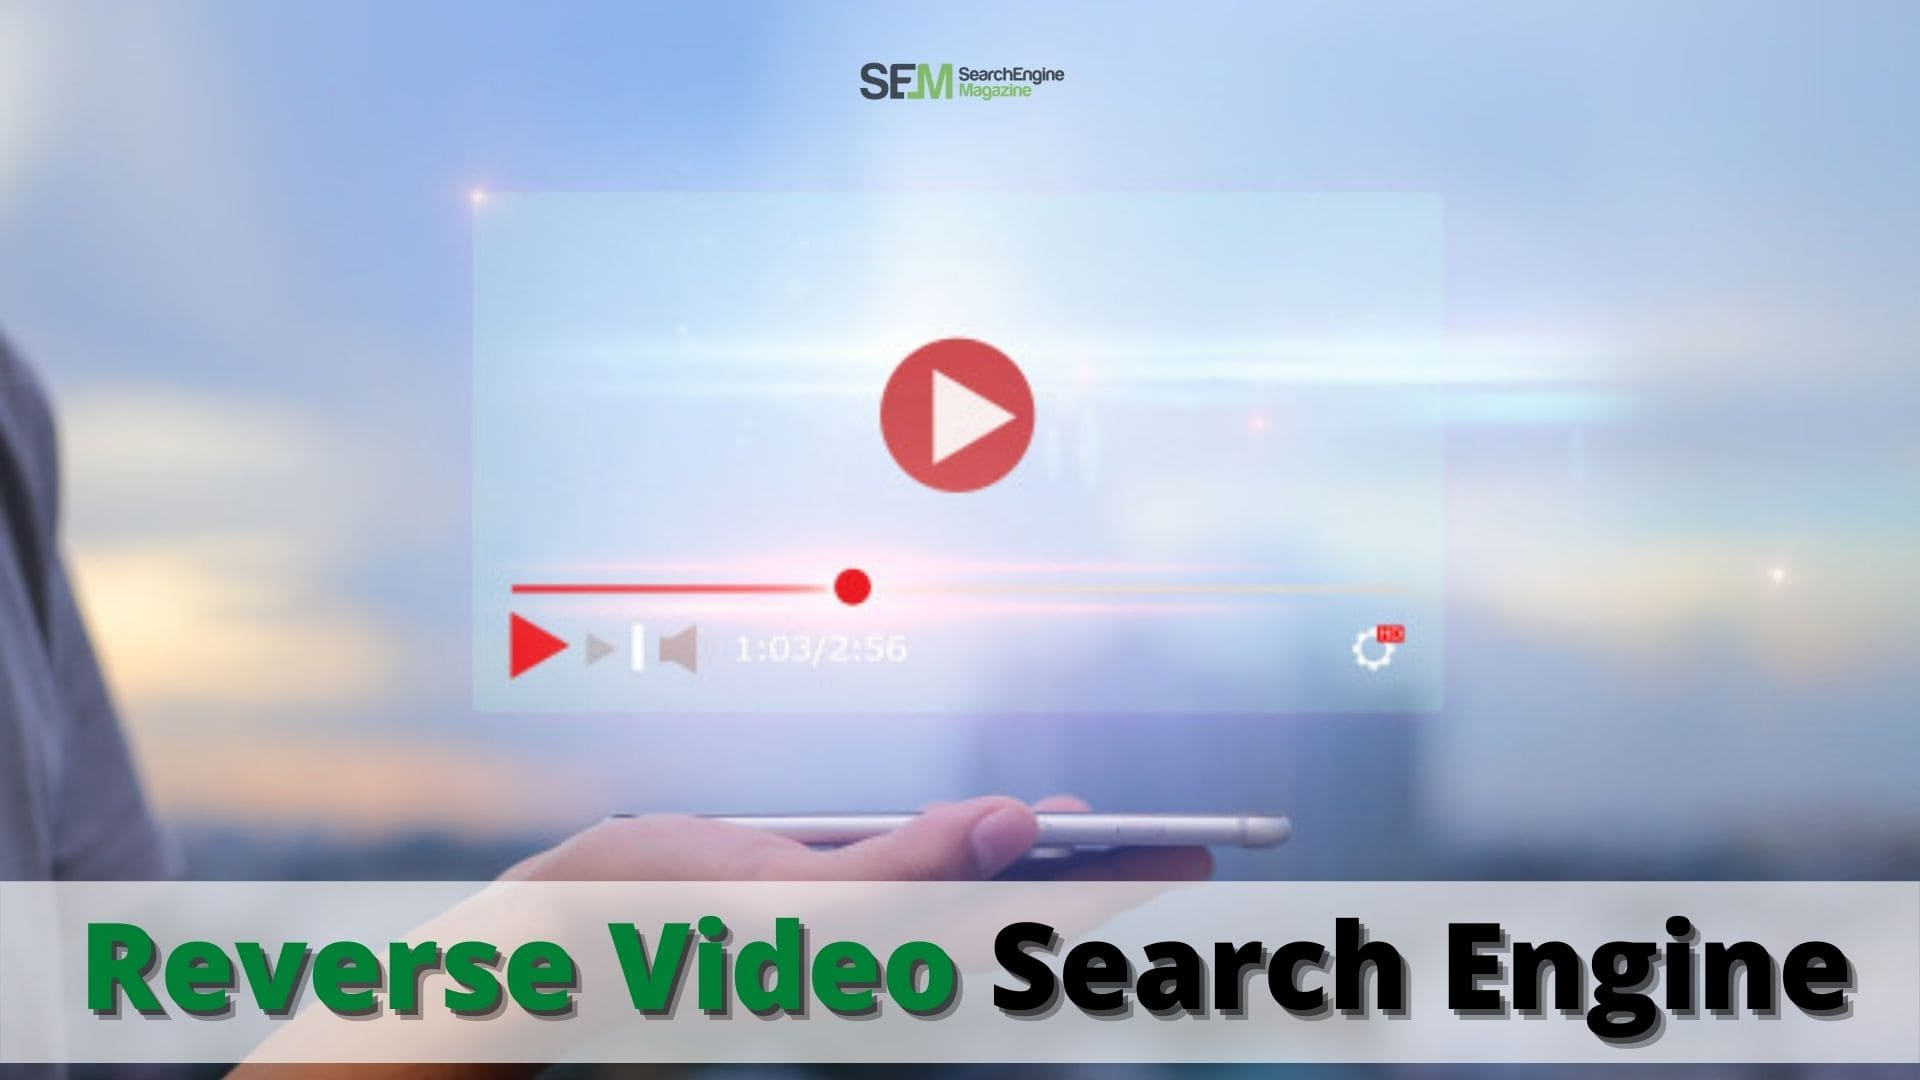 Reverse Video Search Engine